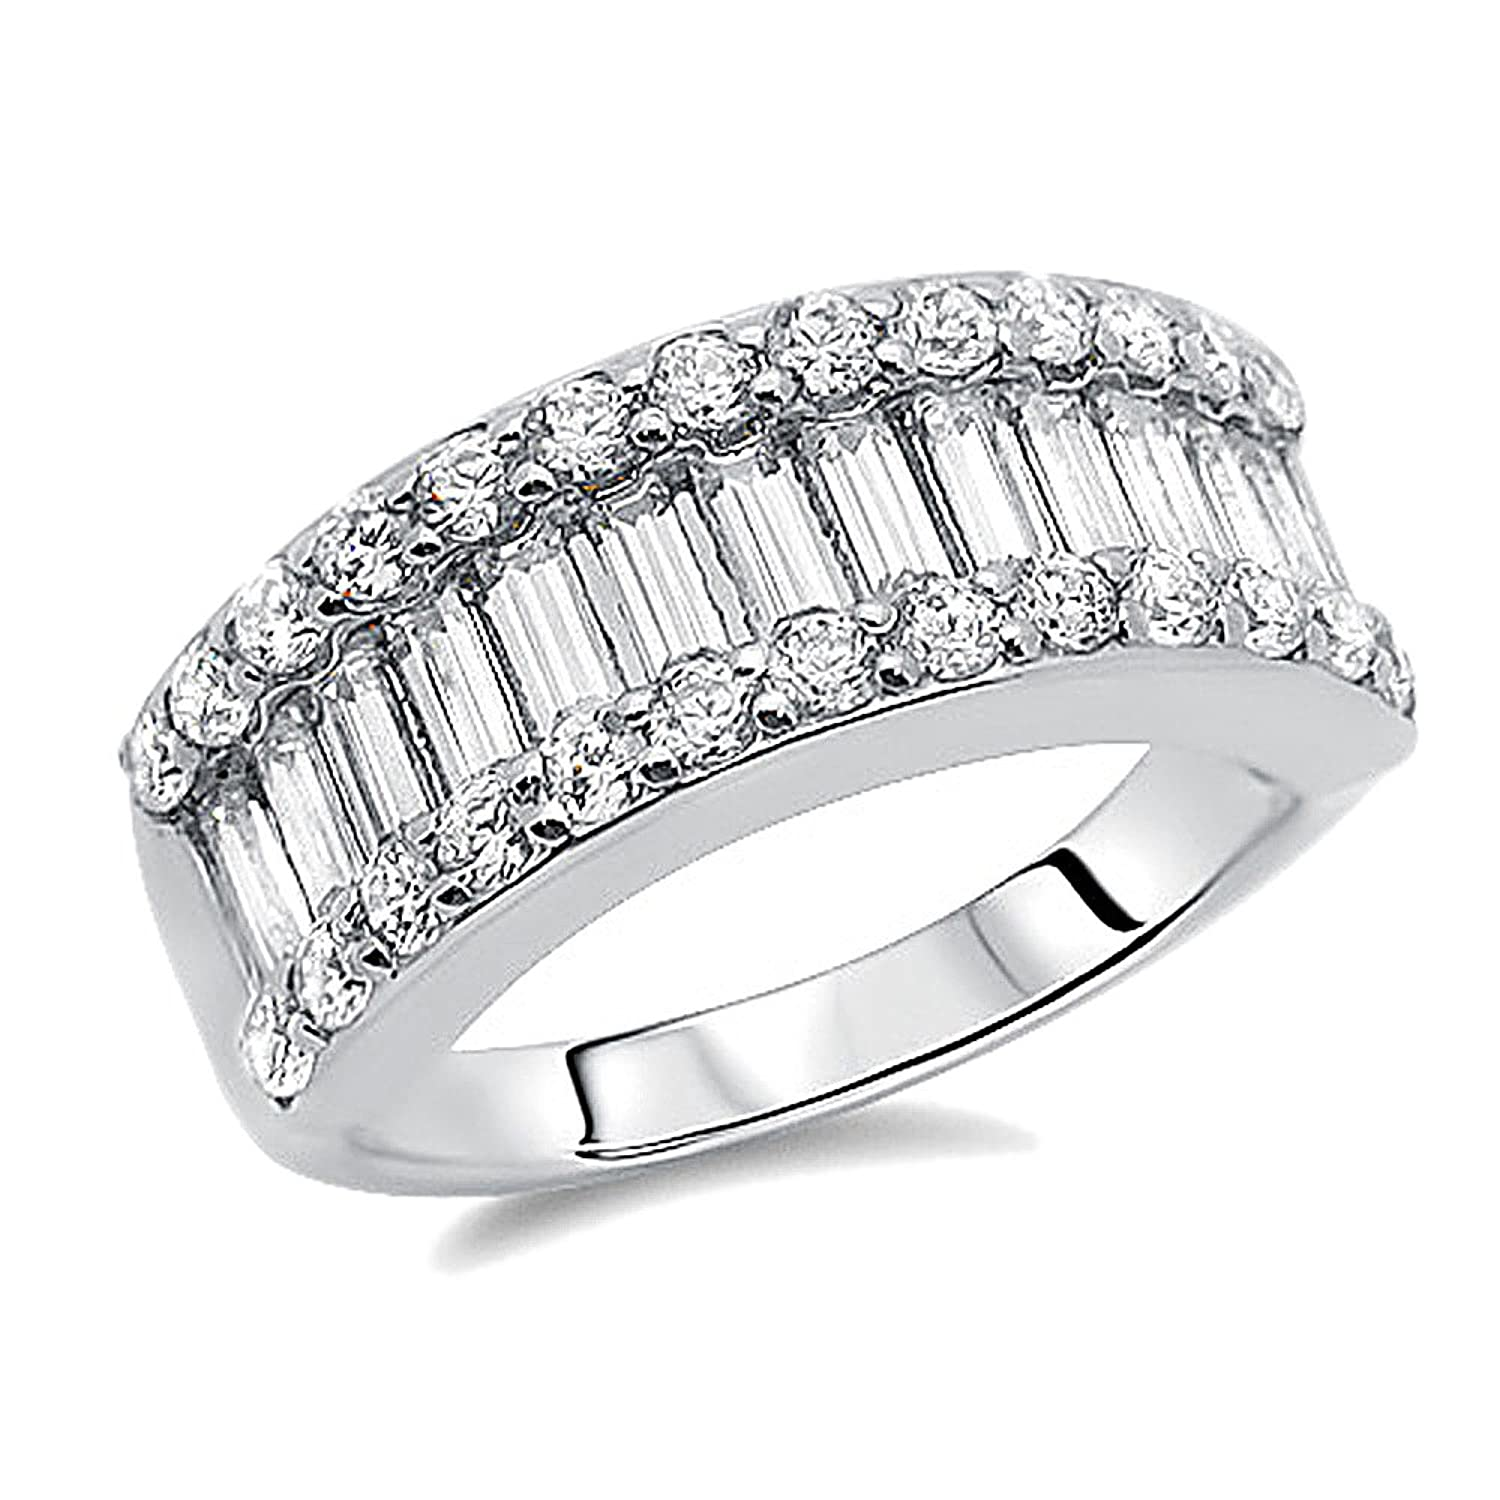 bands raine anniversary product baguette platinum band diamond wedding turgeon